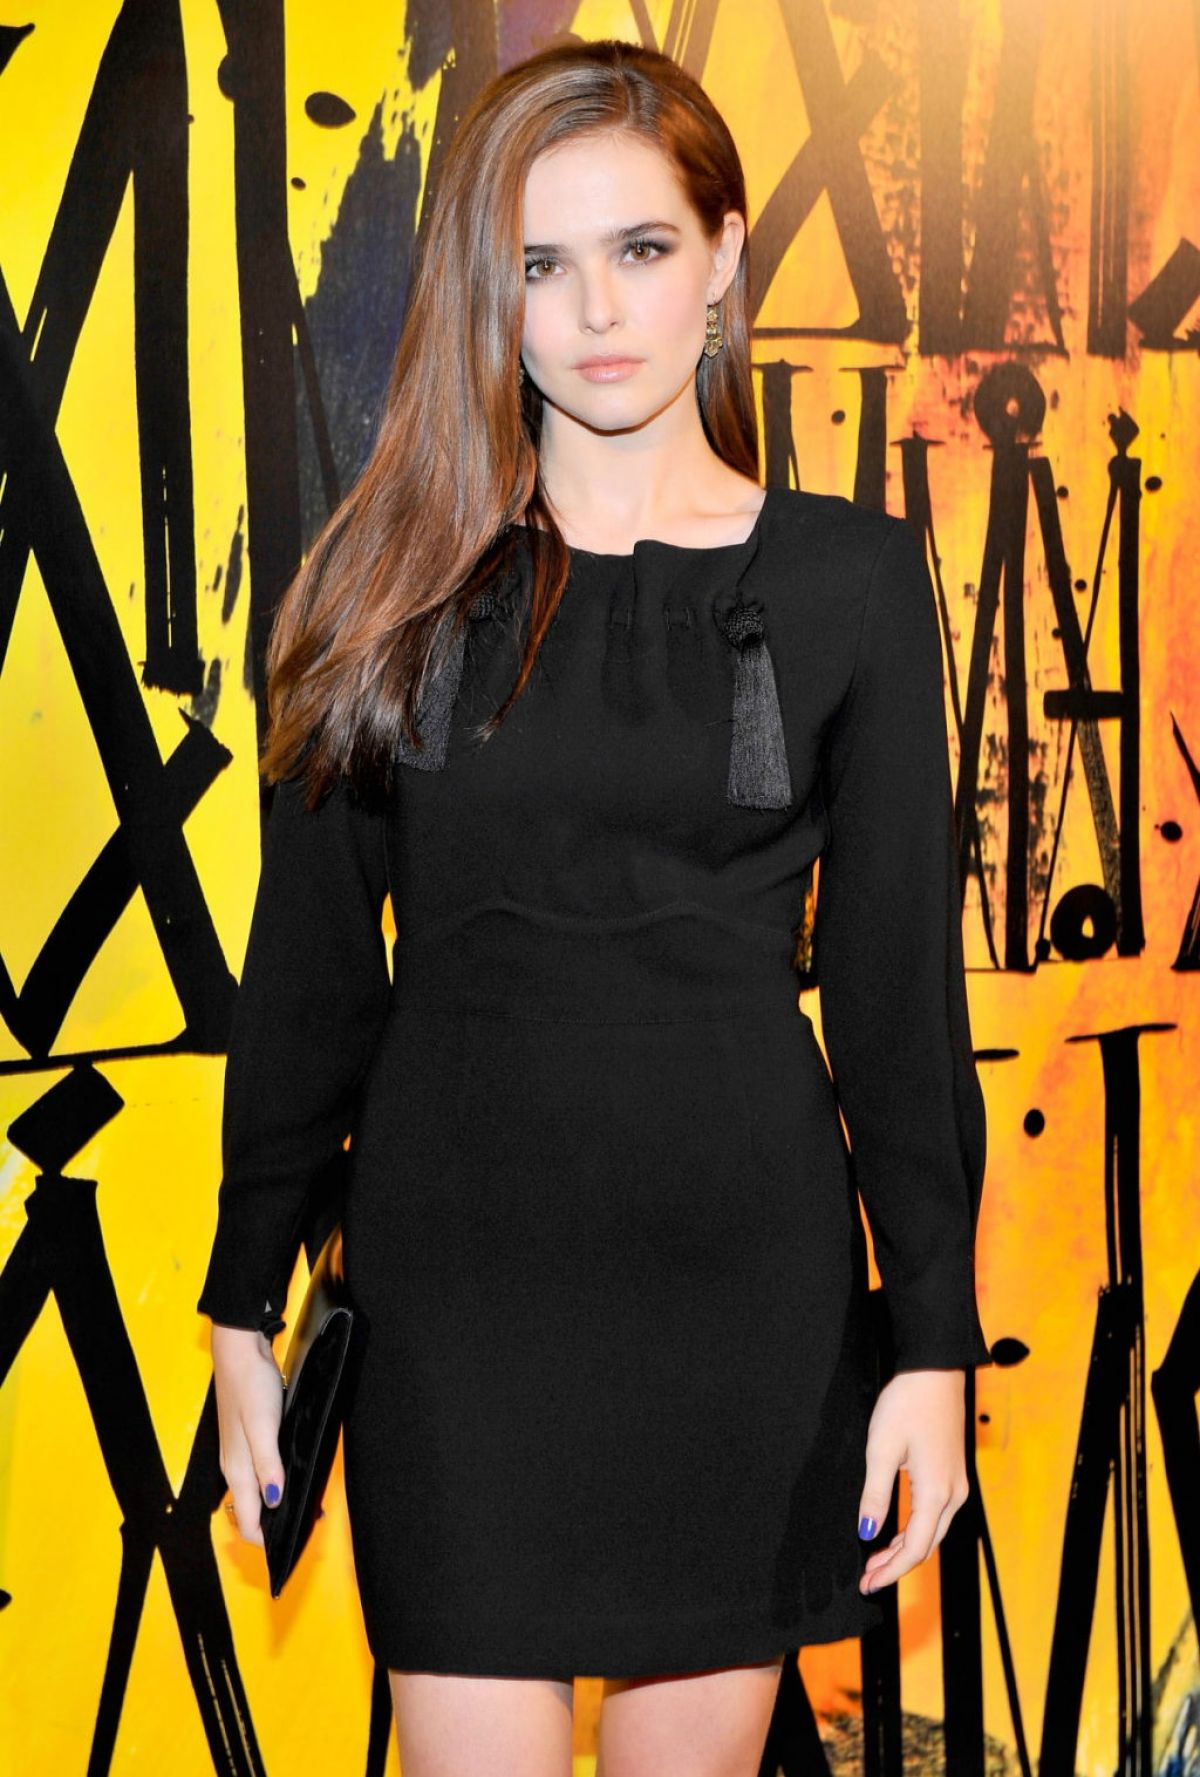 ZOEY DEUTCH at Jiimmy Choo